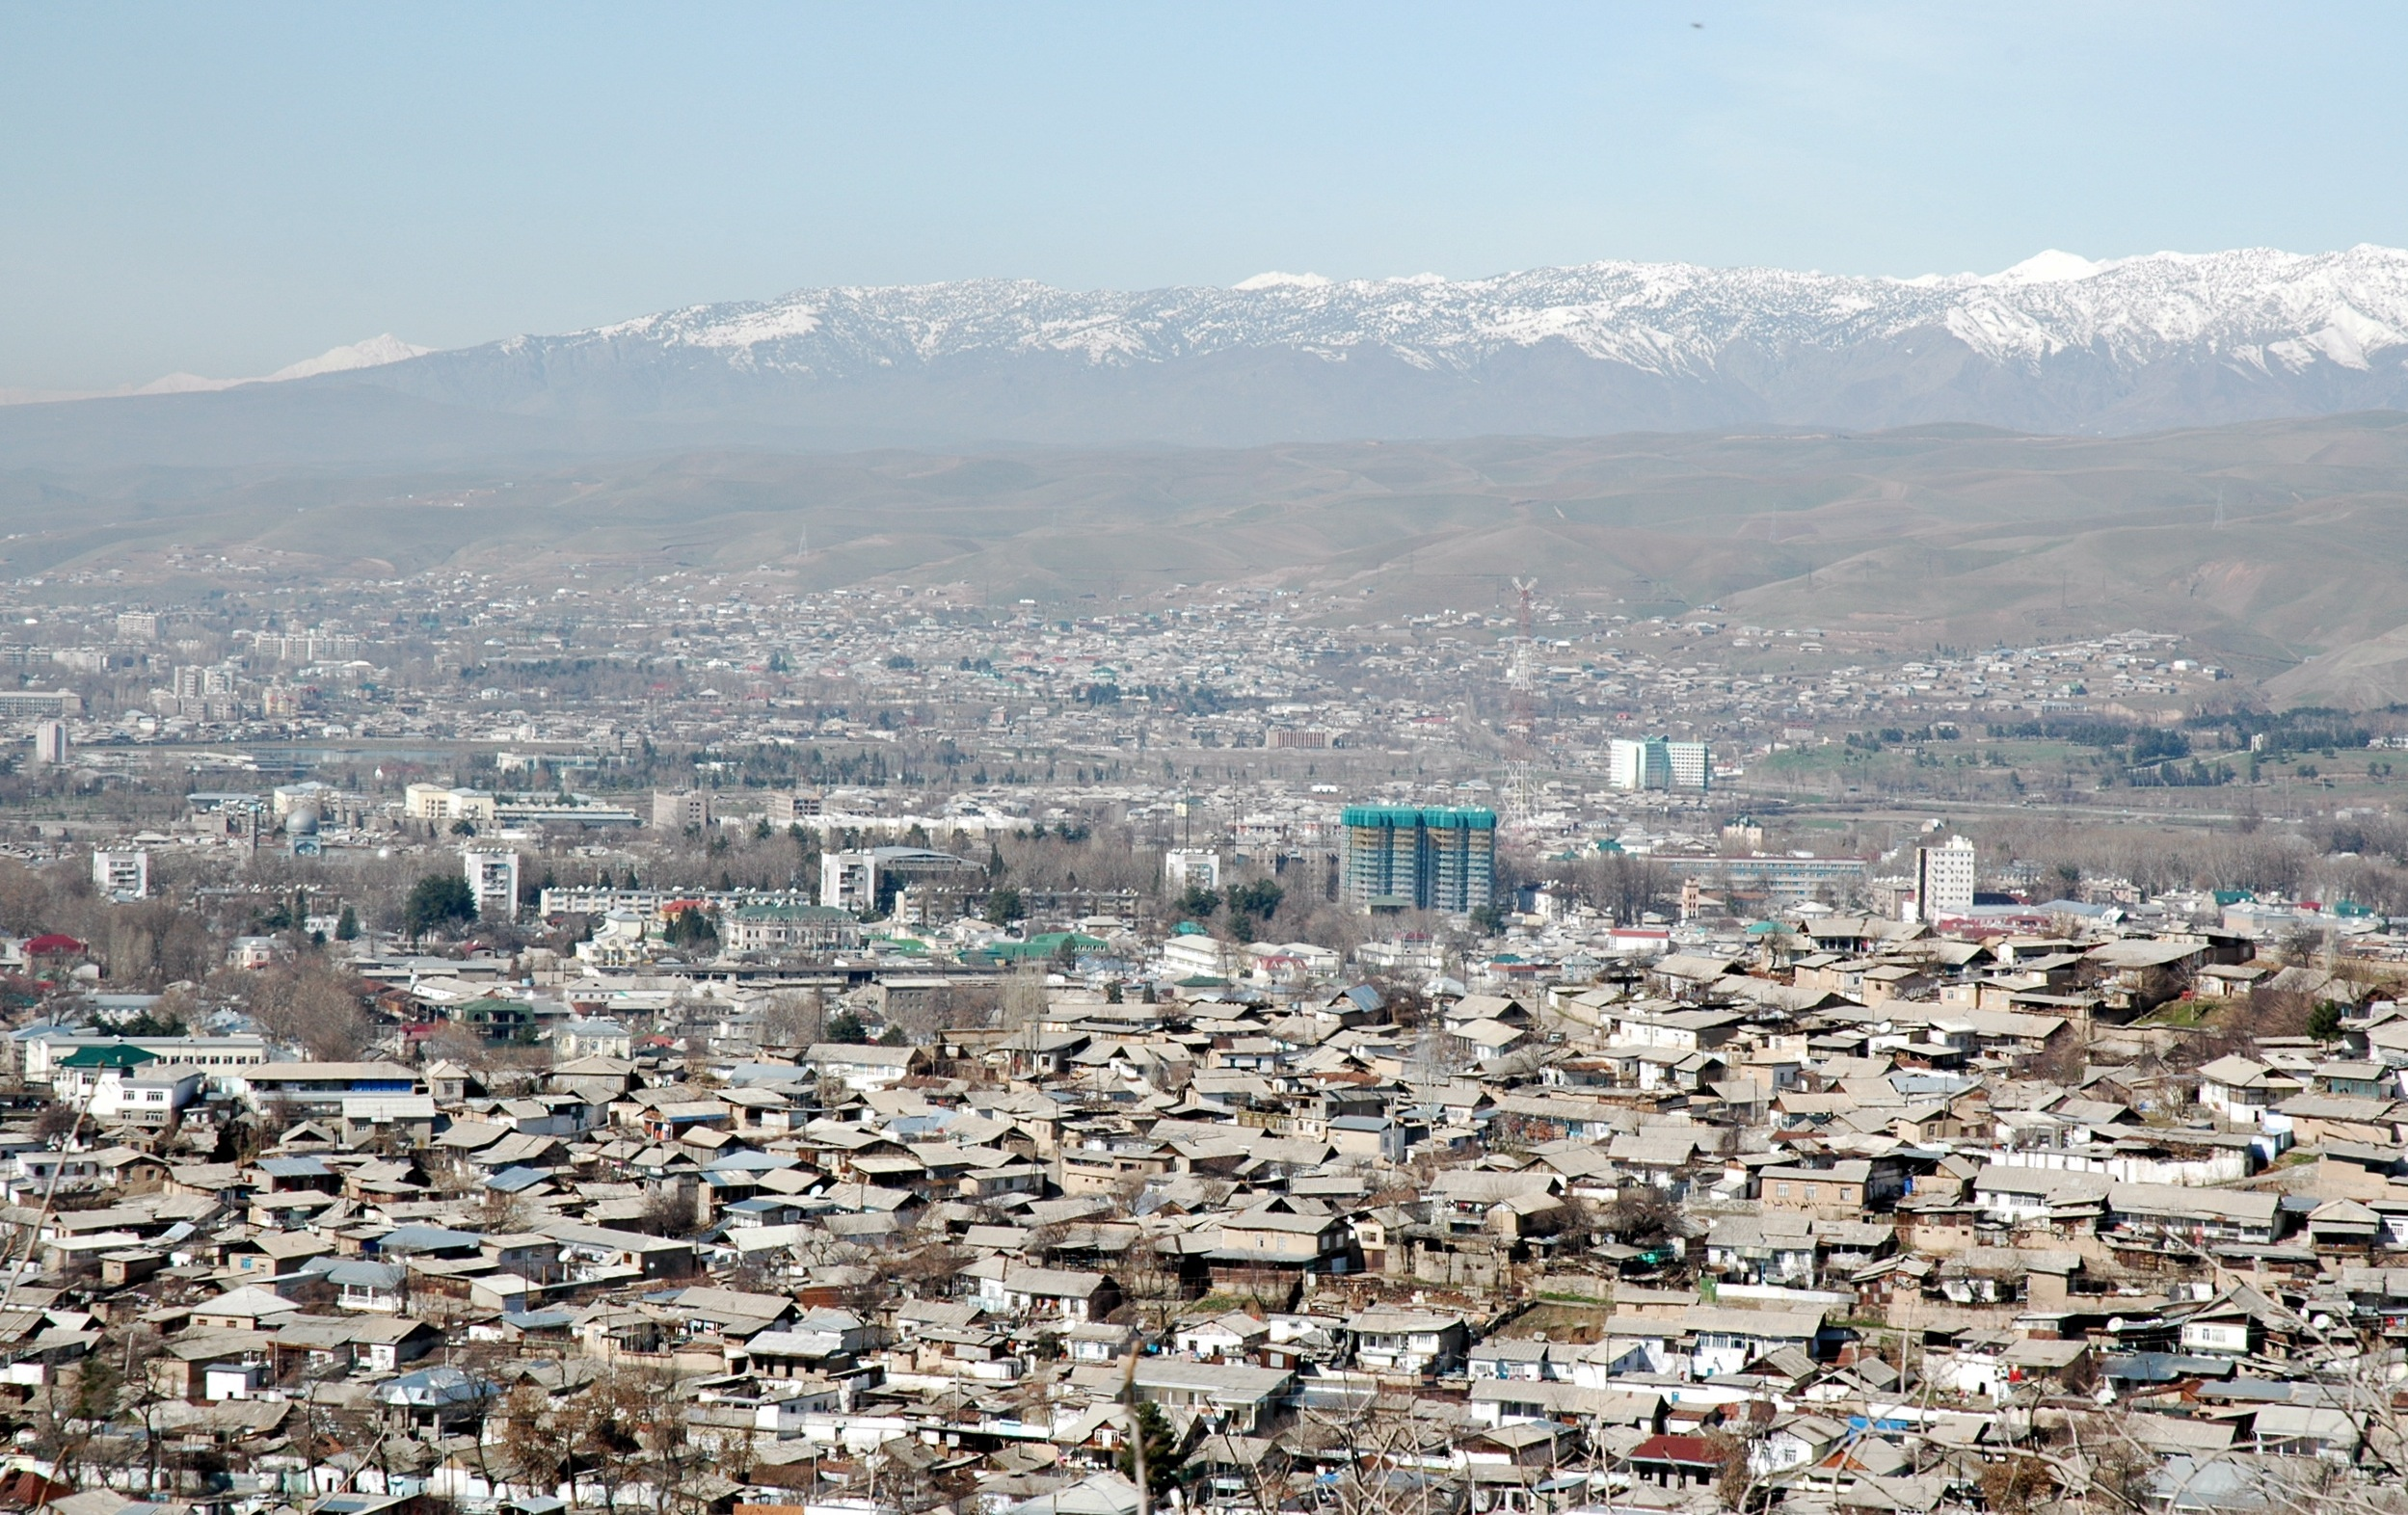 dushanbe dating Day 1: dushanbe – kulob – khalikum transfer to kulob excellent views we will stop for photos shooting and a picnic visiting a small museum in hulbuk before kulob after that continue to the town mausoleum of sheikh said- hamadoni dating from the first islam period.